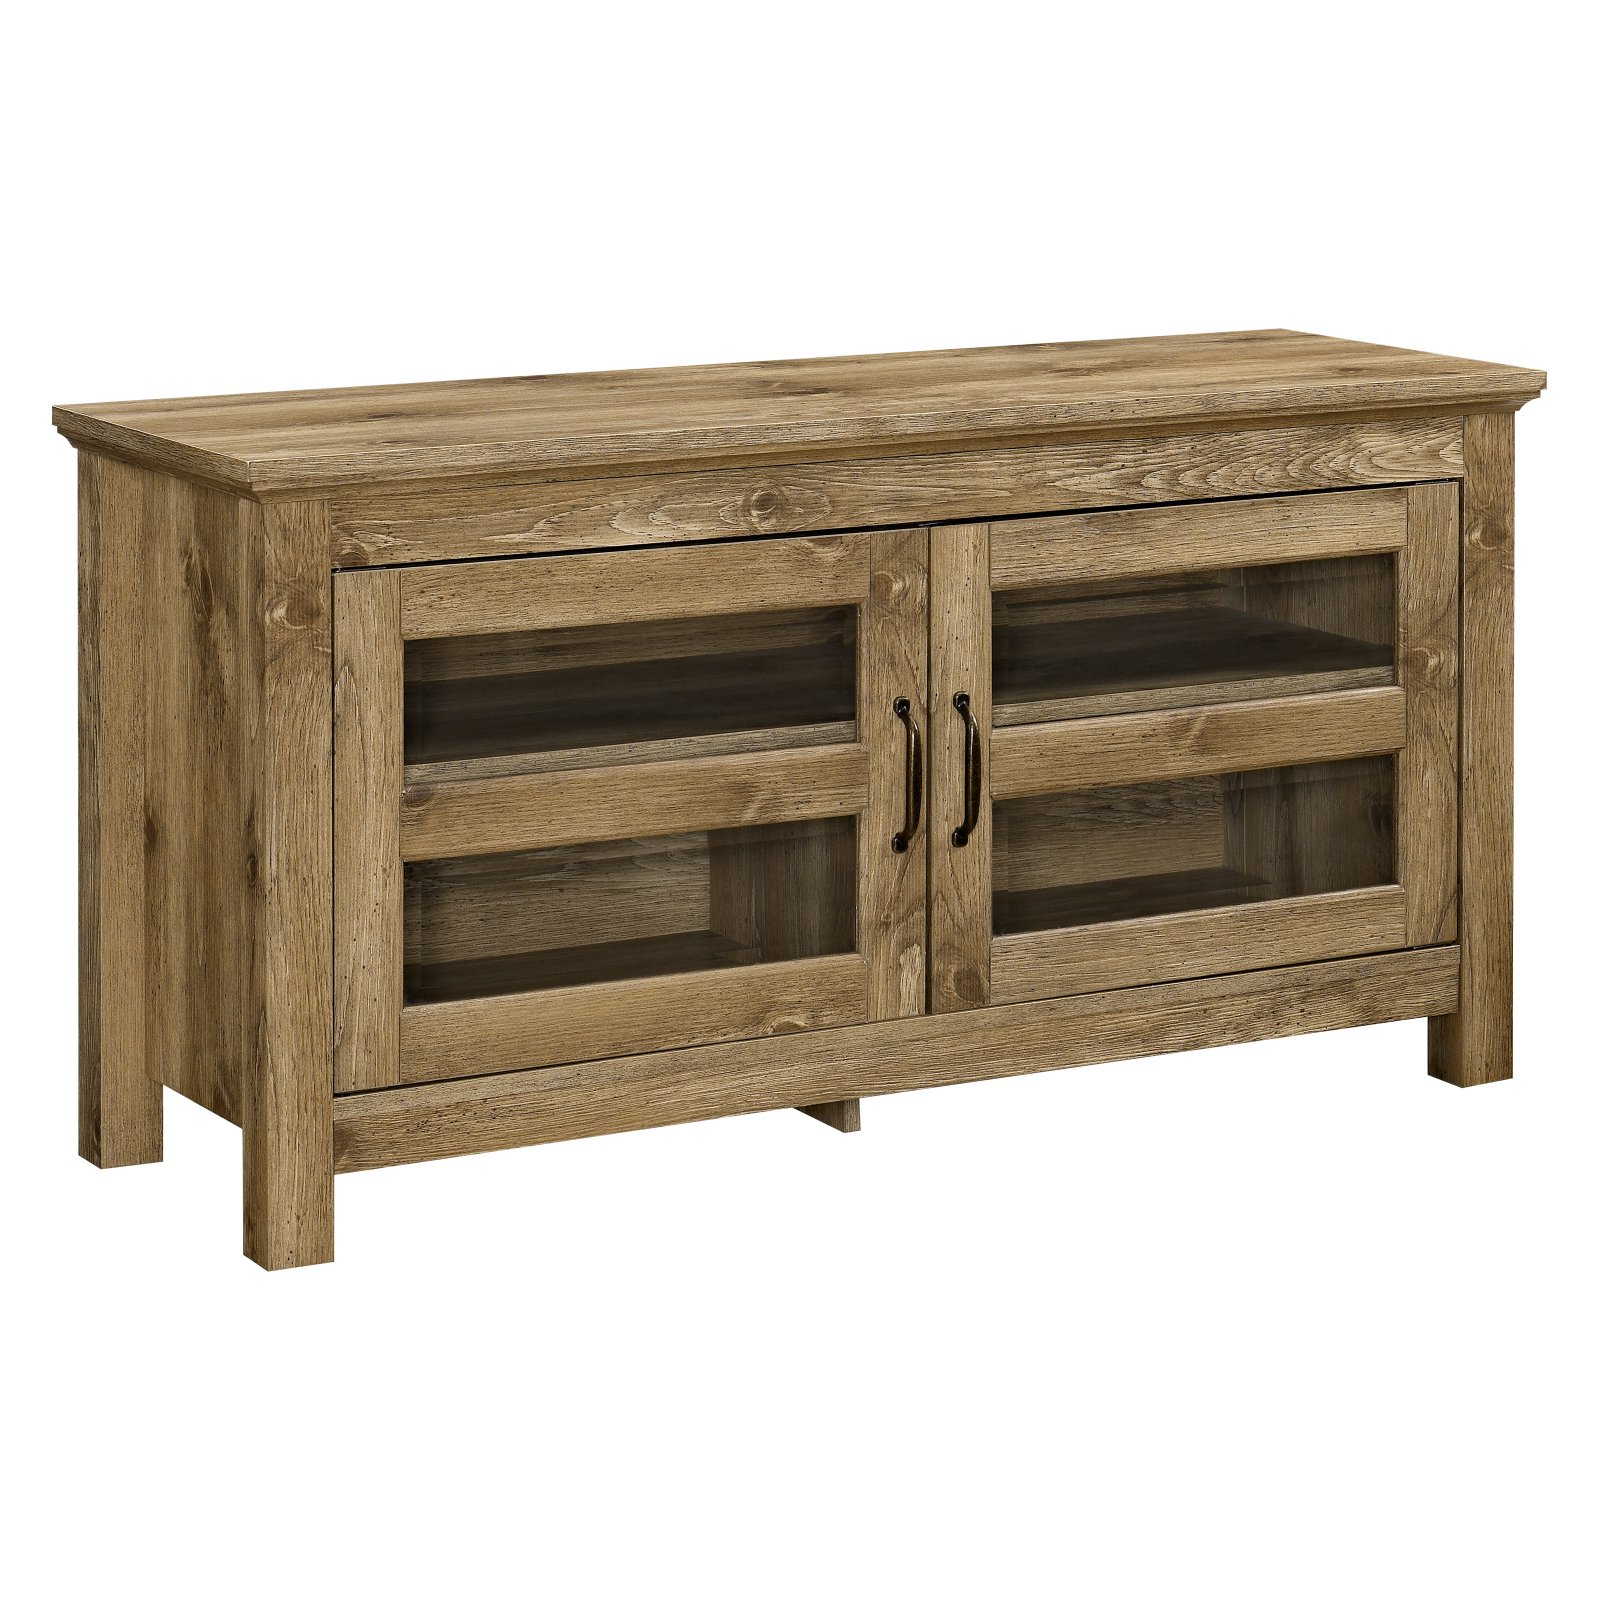 Walker Edison 44-in. Wood TV Media Stand Storage Console